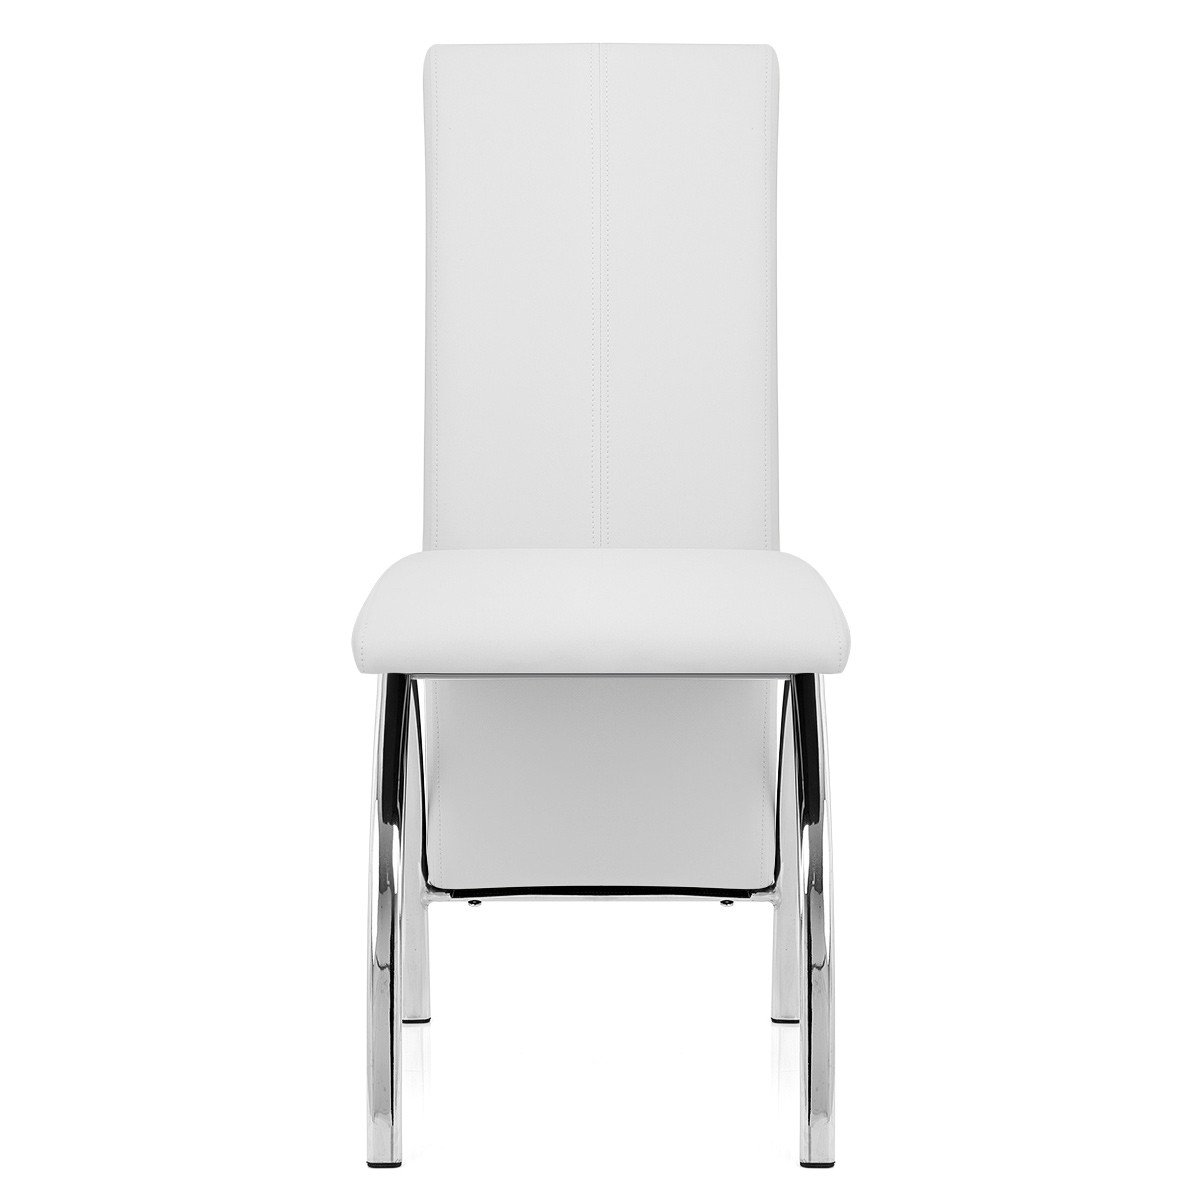 Atlantic Shopping Dali Dining Chair White